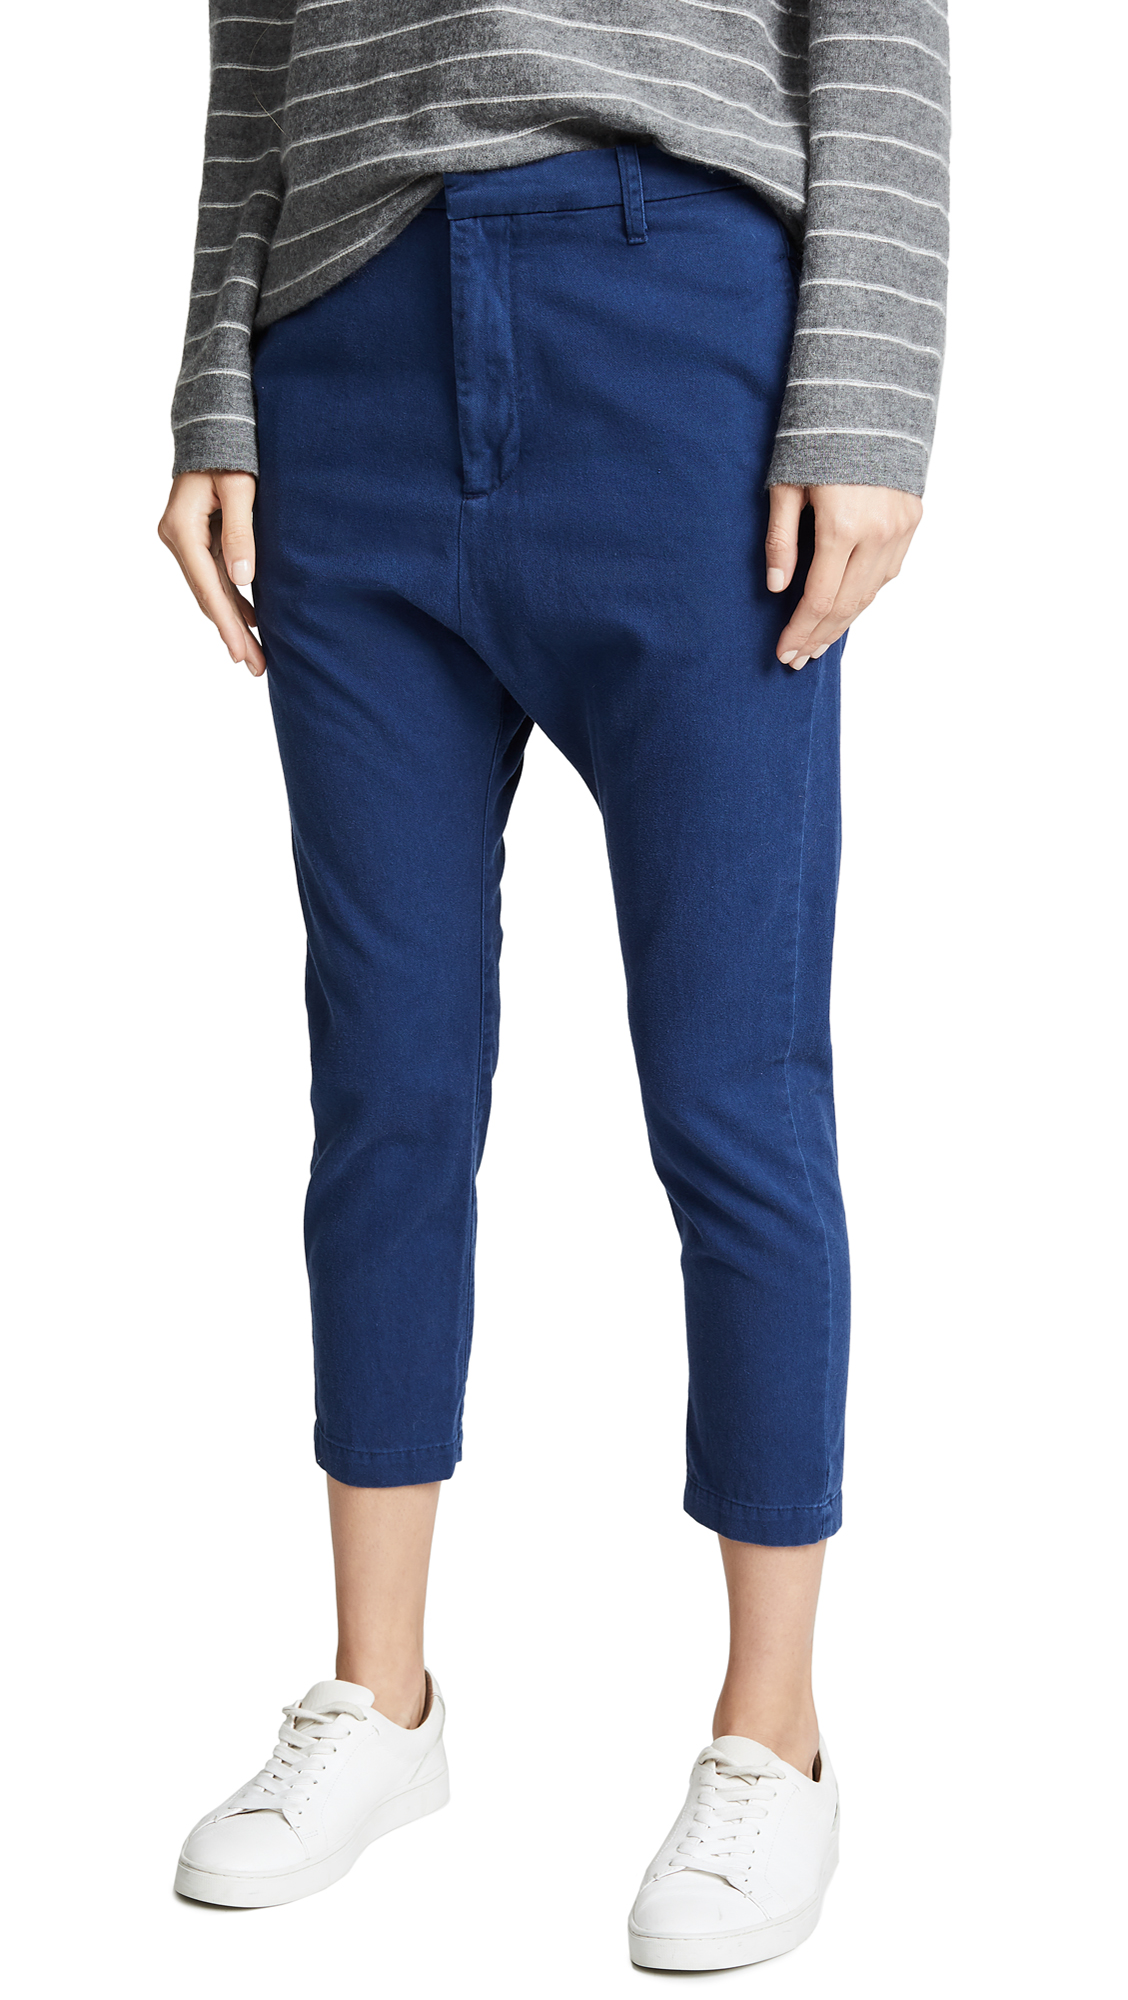 Gavin Pants in Navy